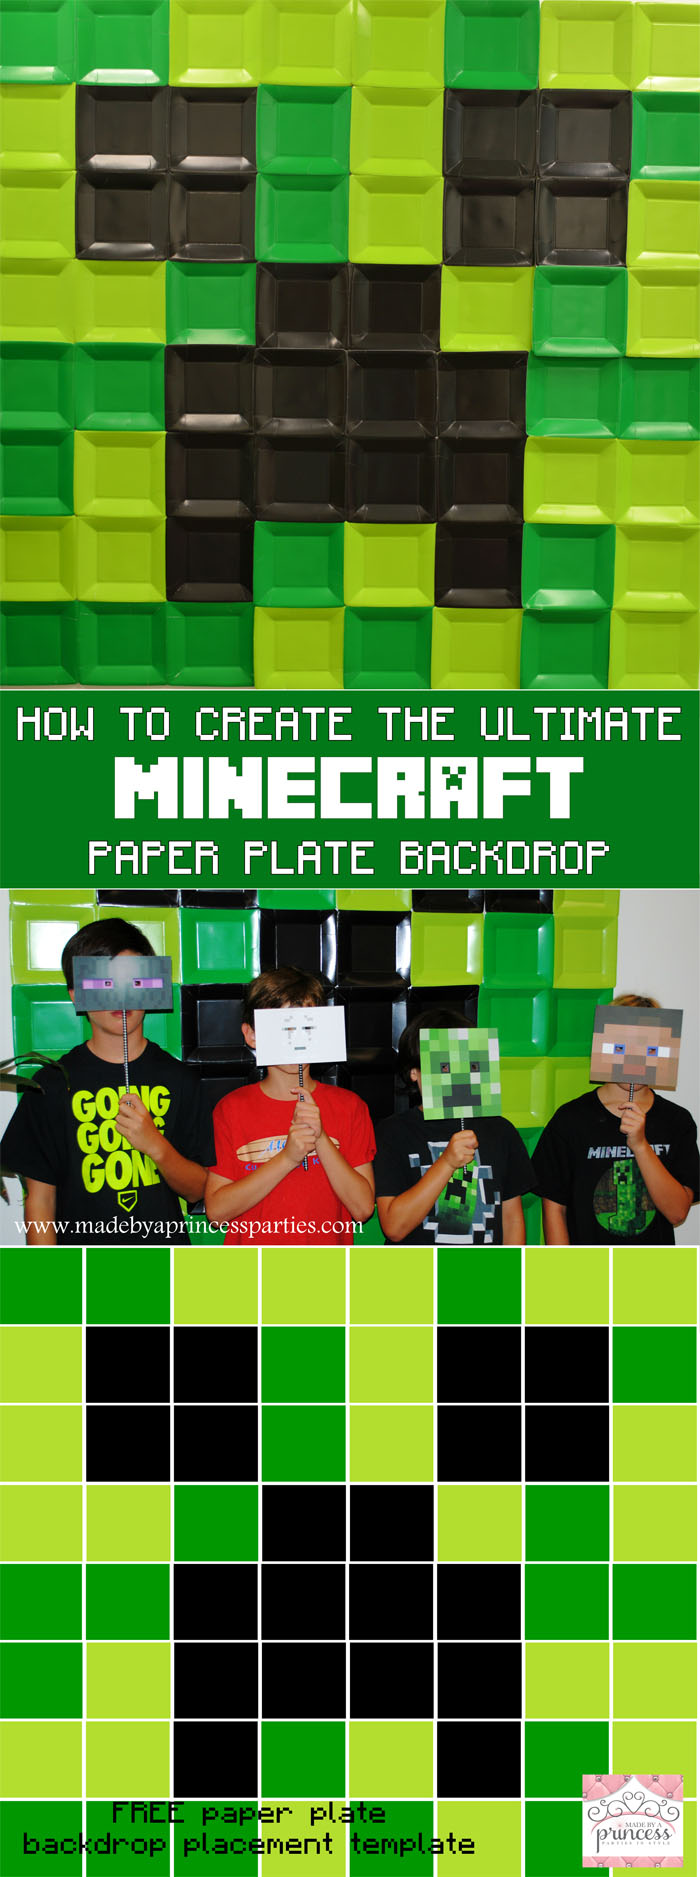 how to create the ultimate minecraft paper plate backdrop pin it